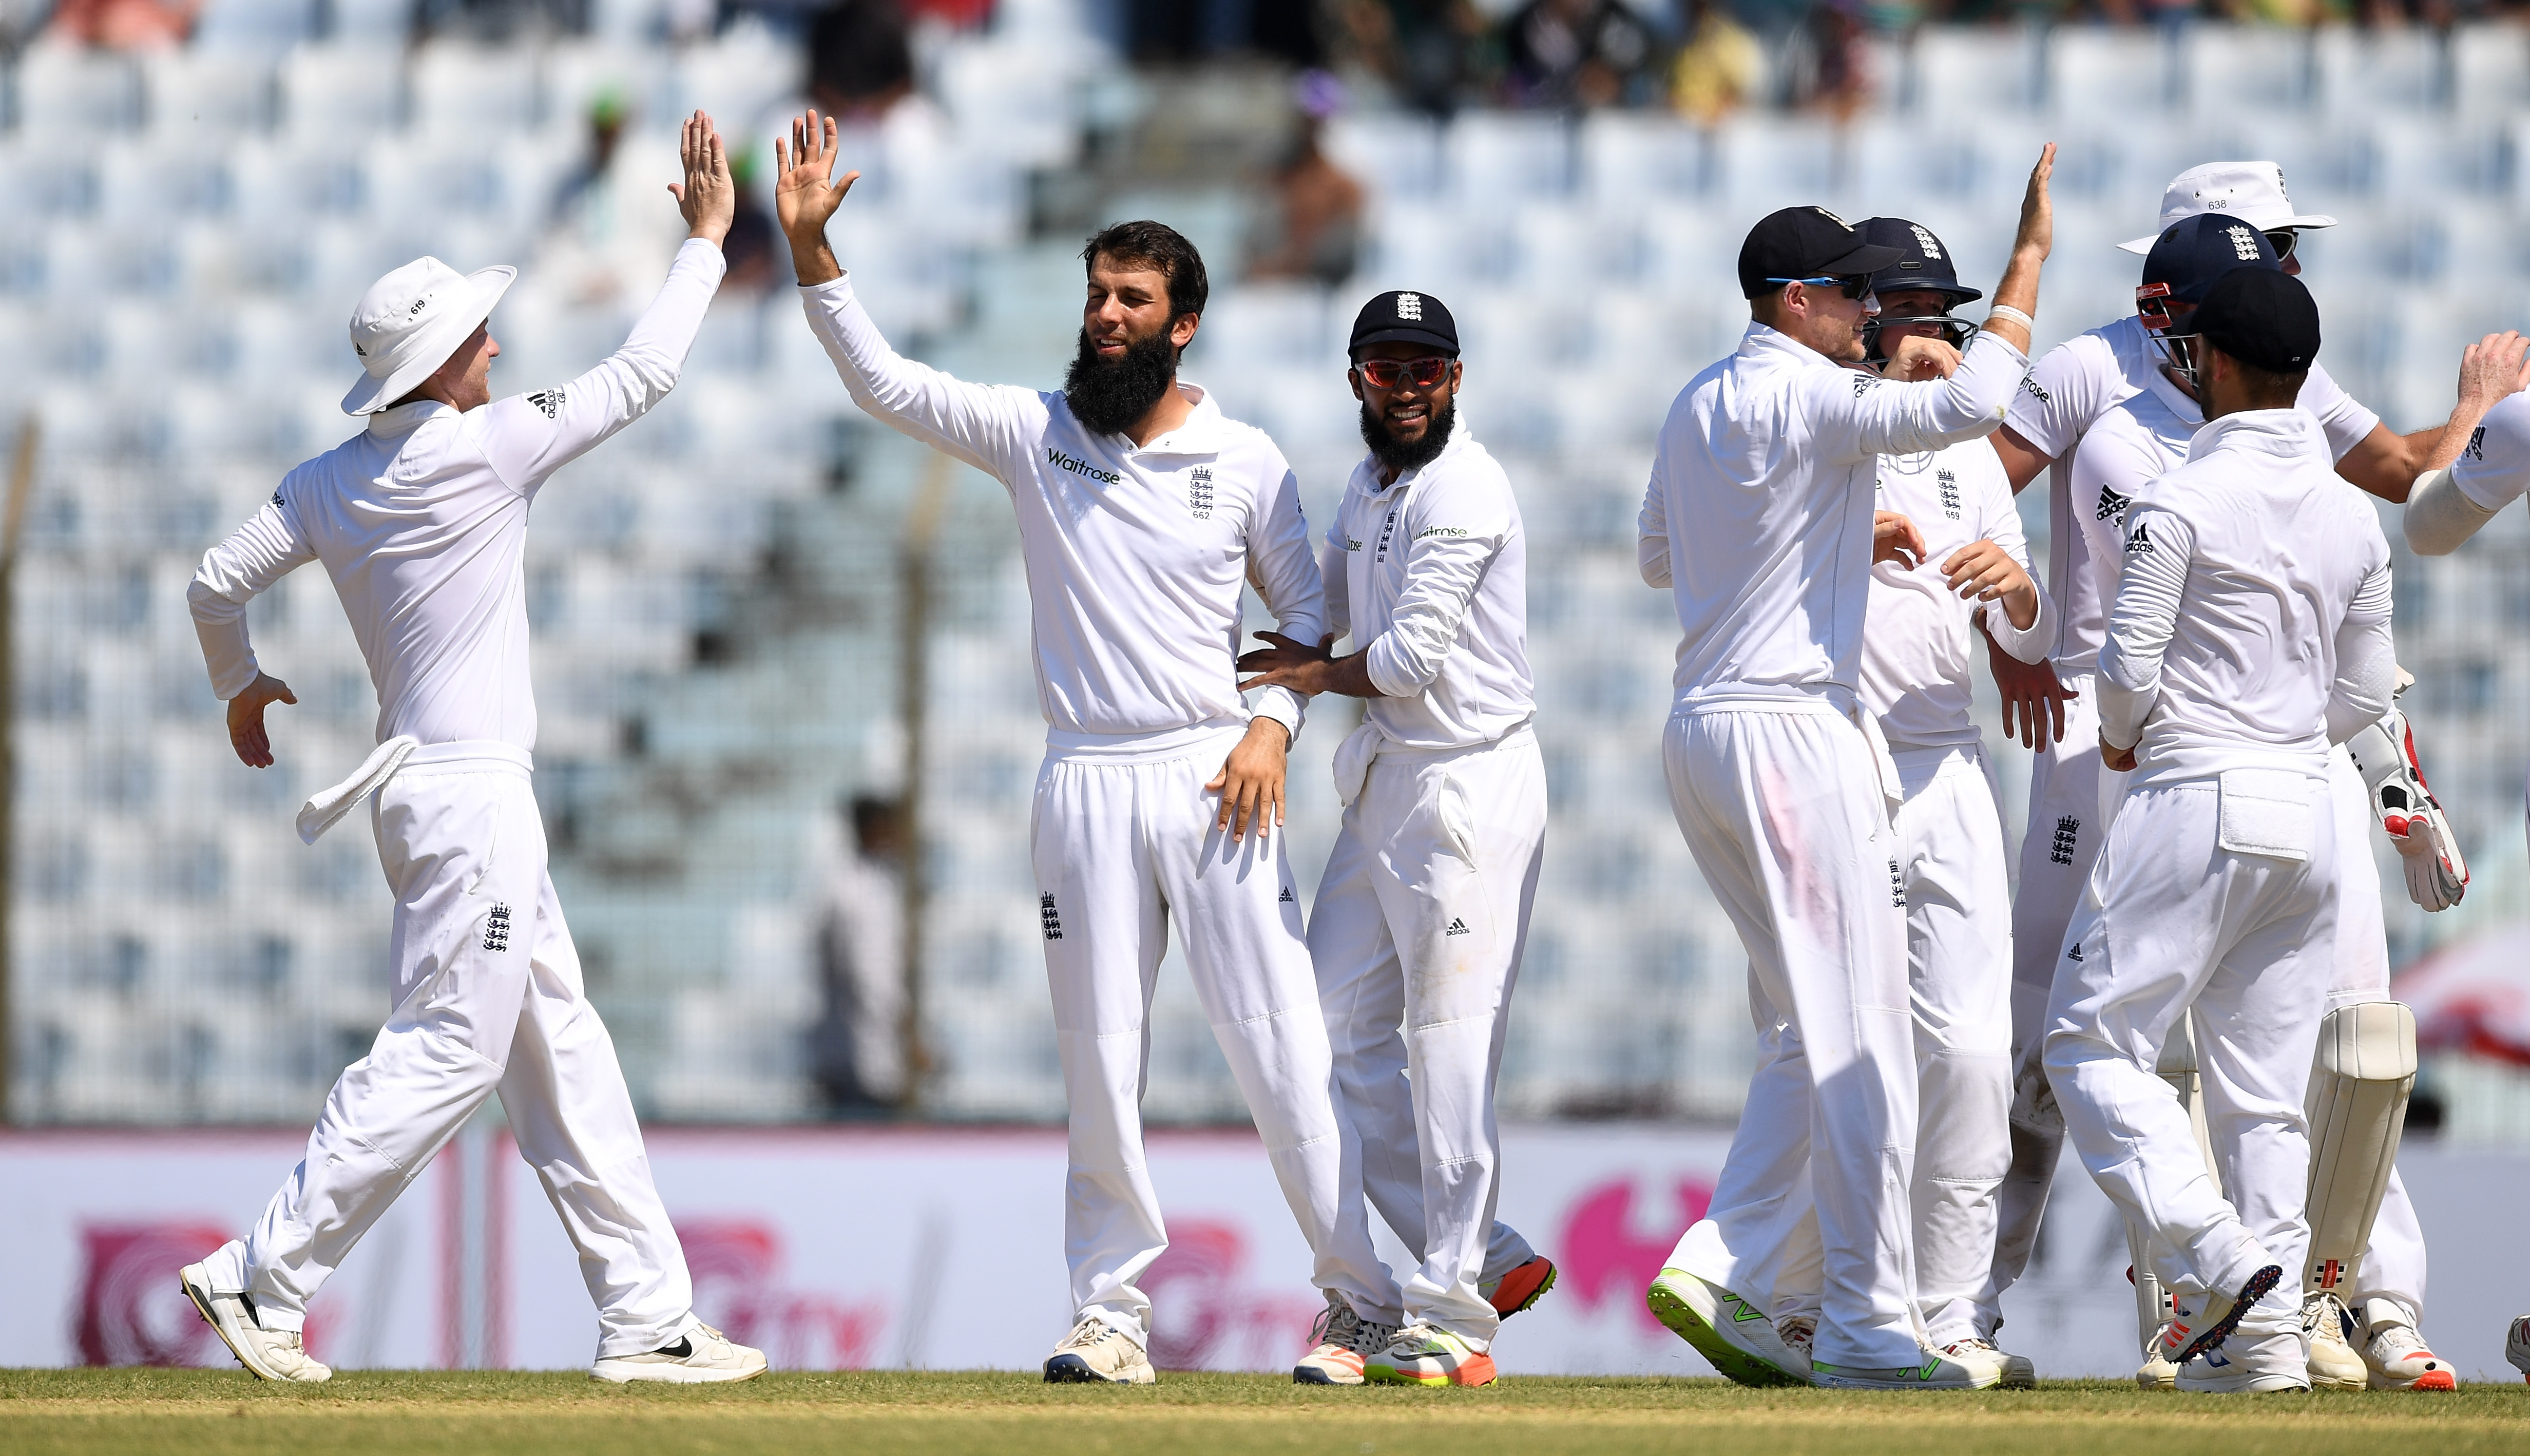 Bangladesh v England Day Two Debrief: England spinners Moeen Ali and Adil Rashid fail to make full use of surface